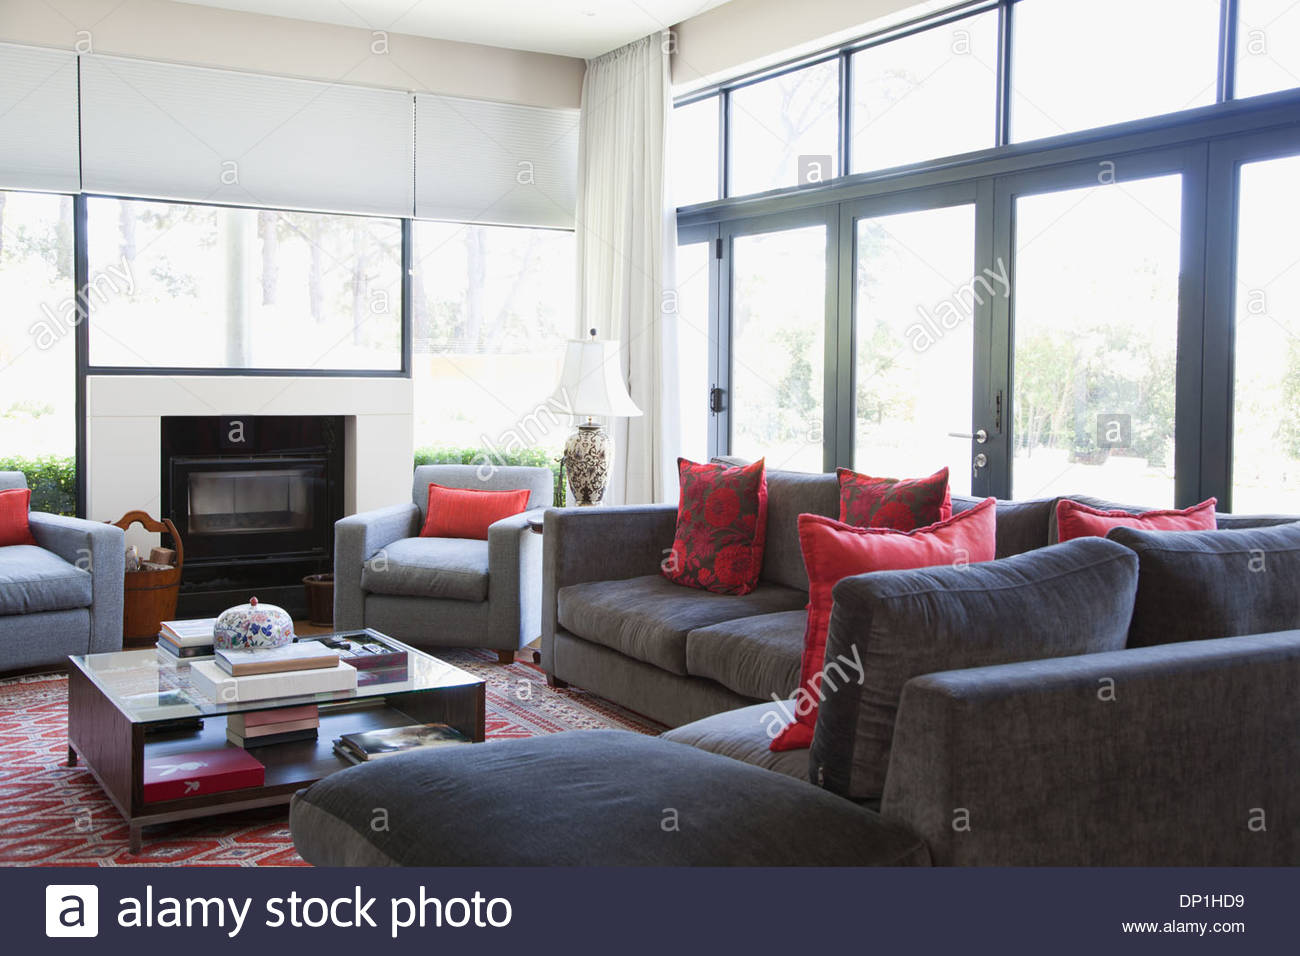 Living room - Stock Image